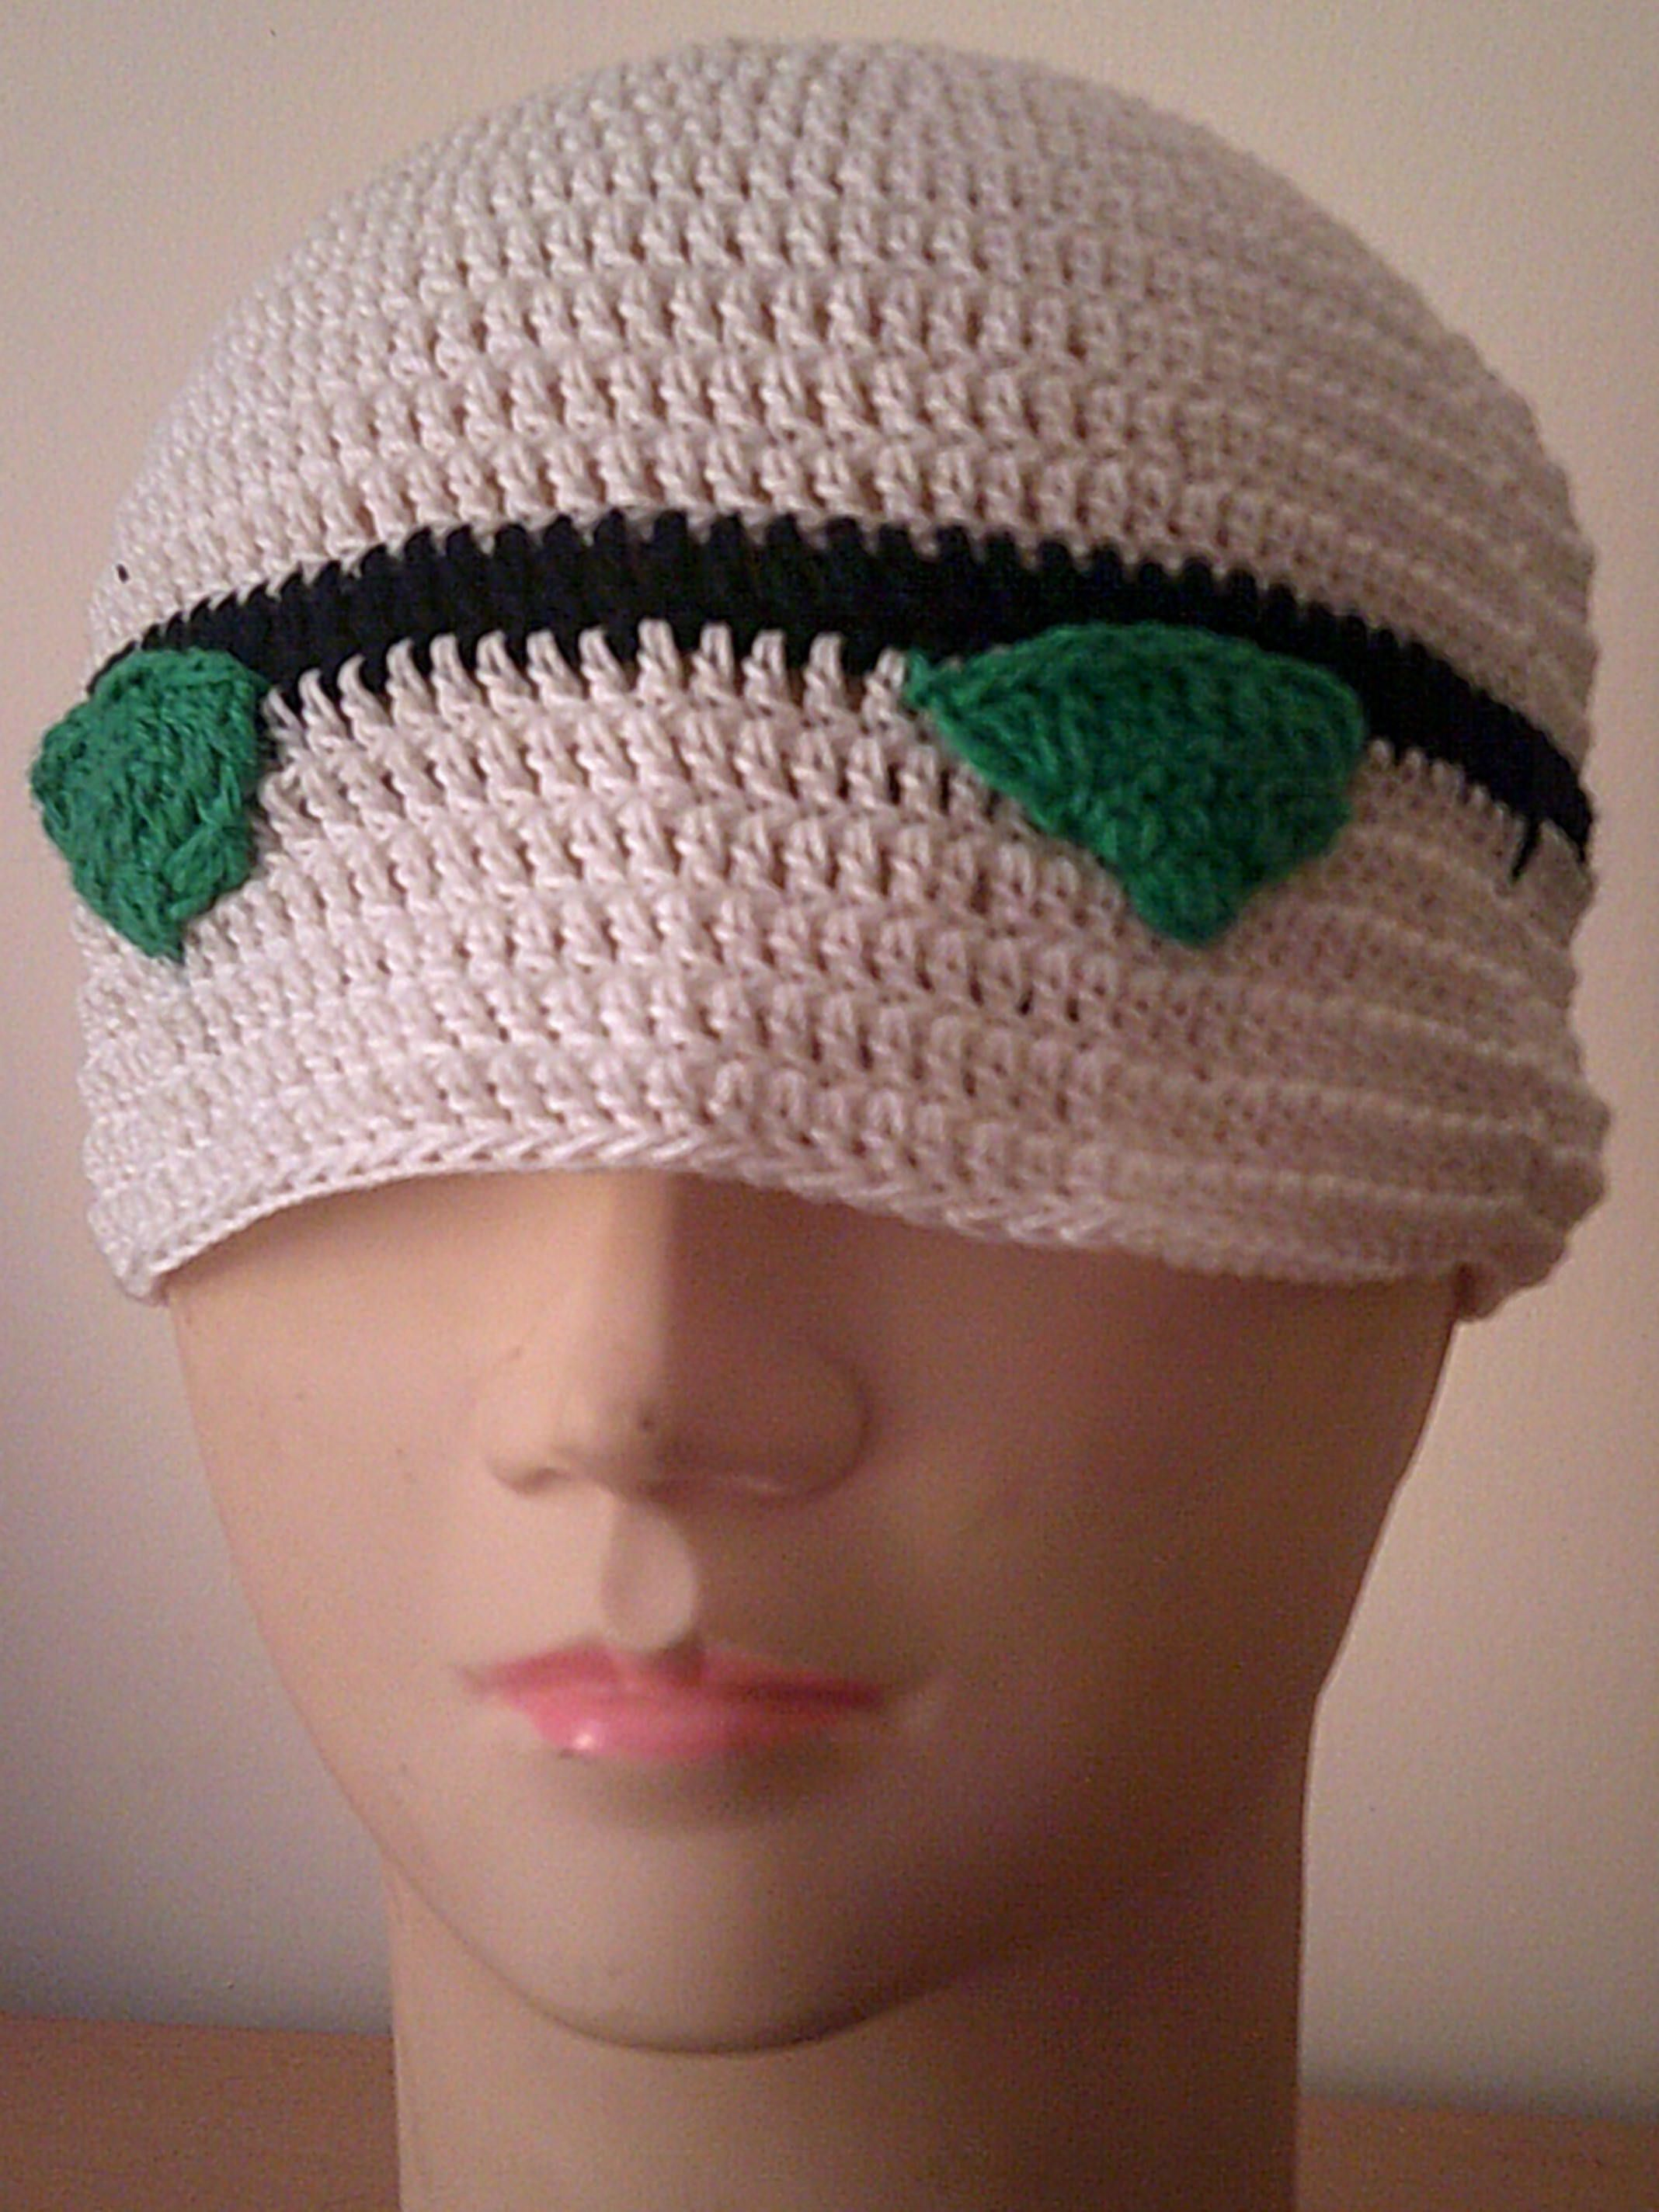 White hat, decorated with black stip and two green eyes. Inspired.